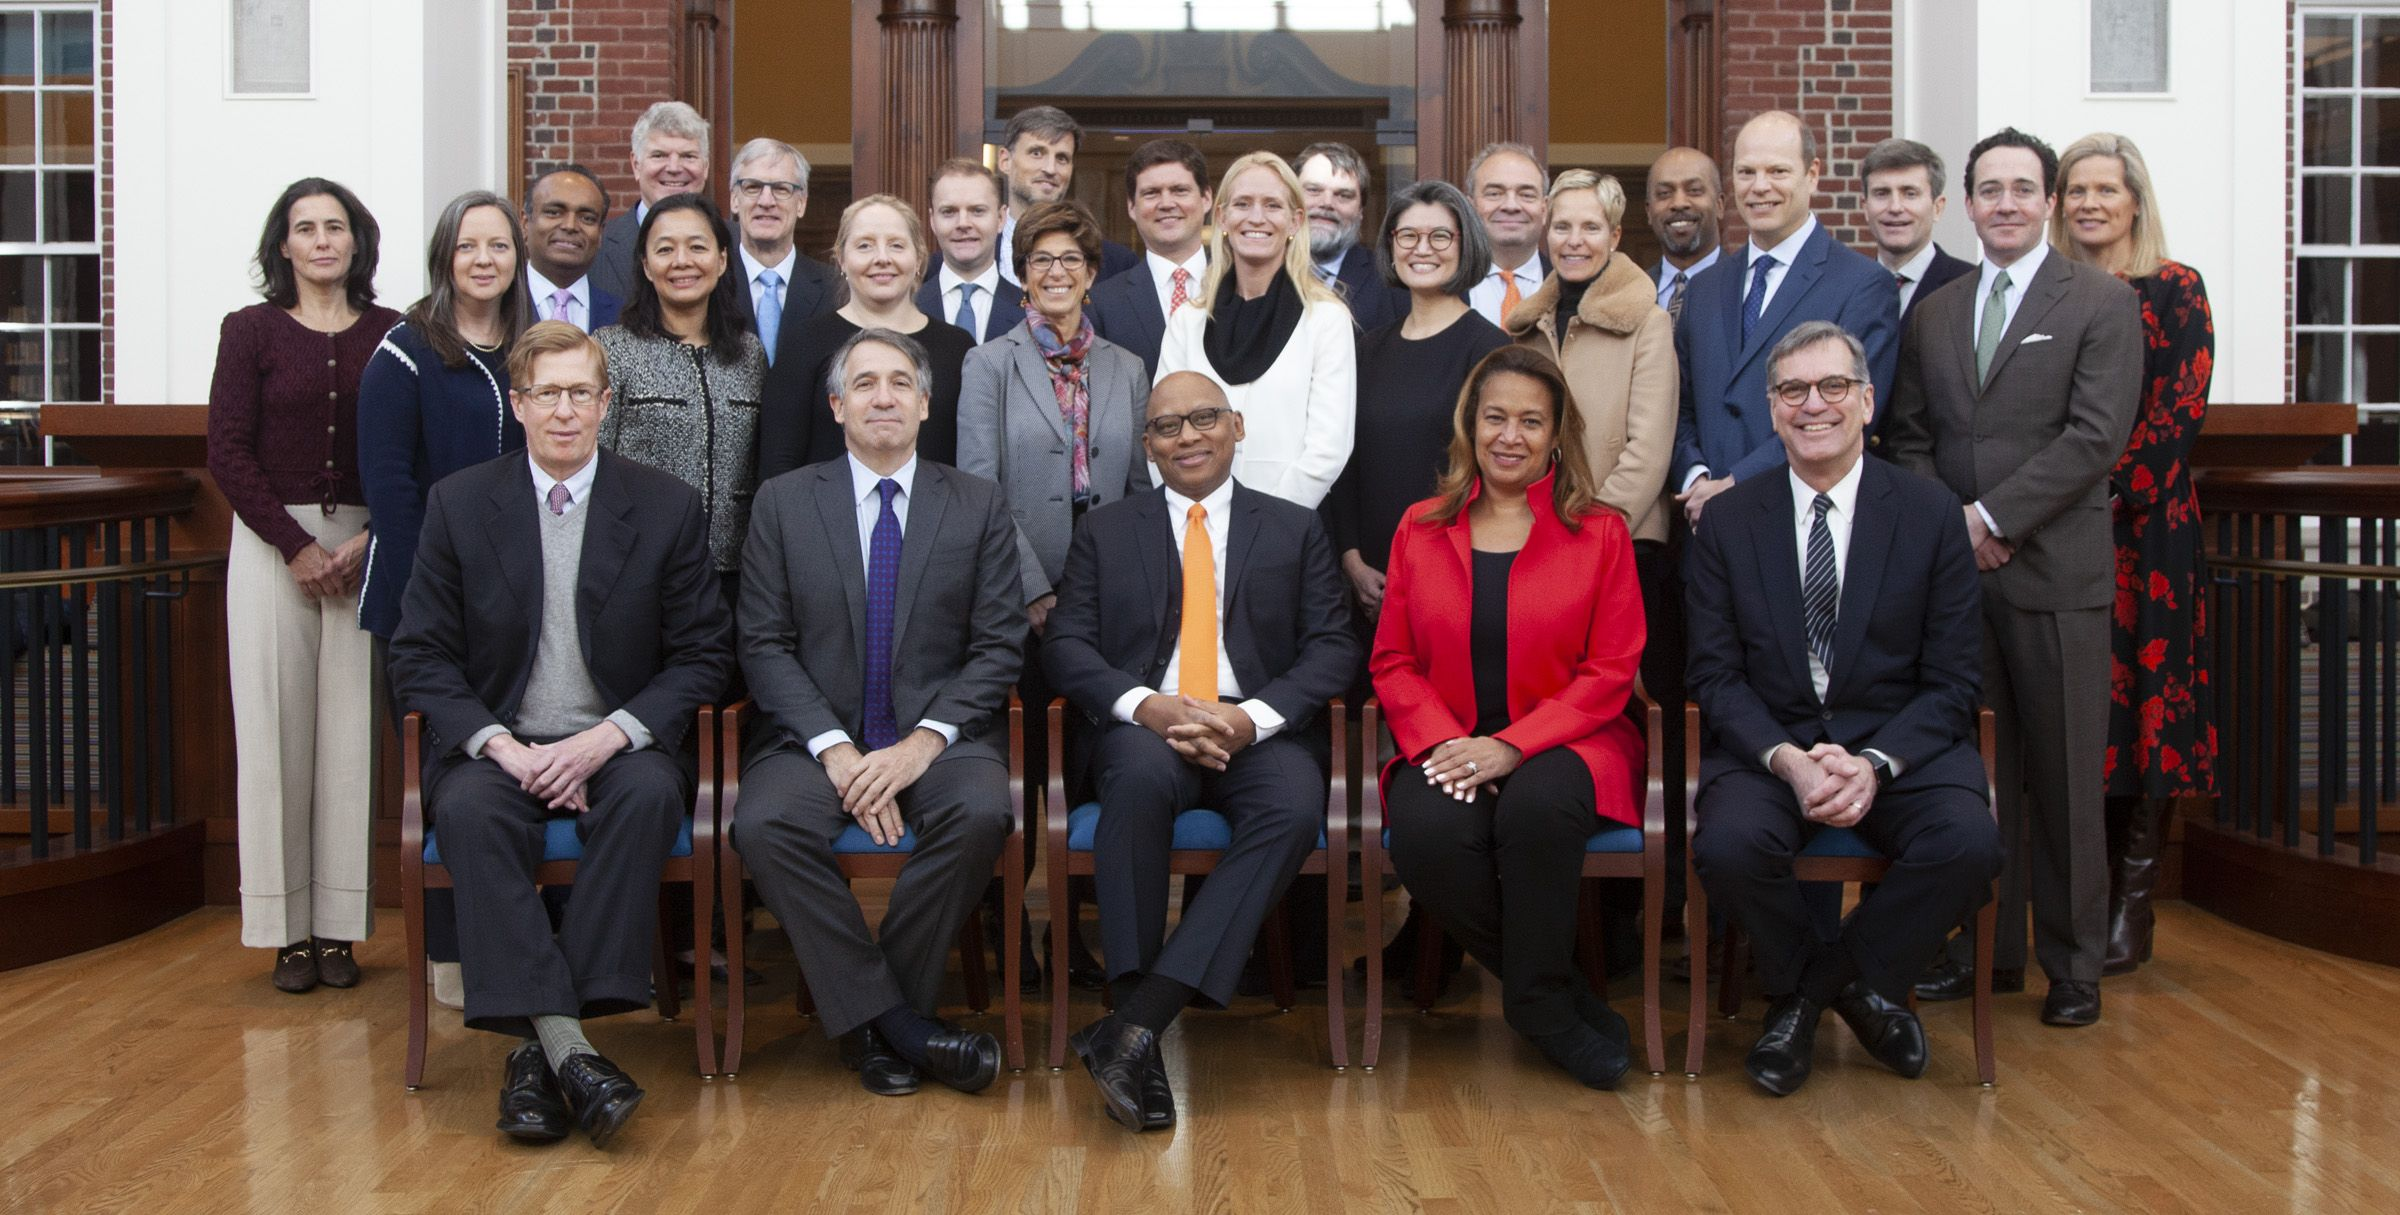 Groton School's Board of Trustees